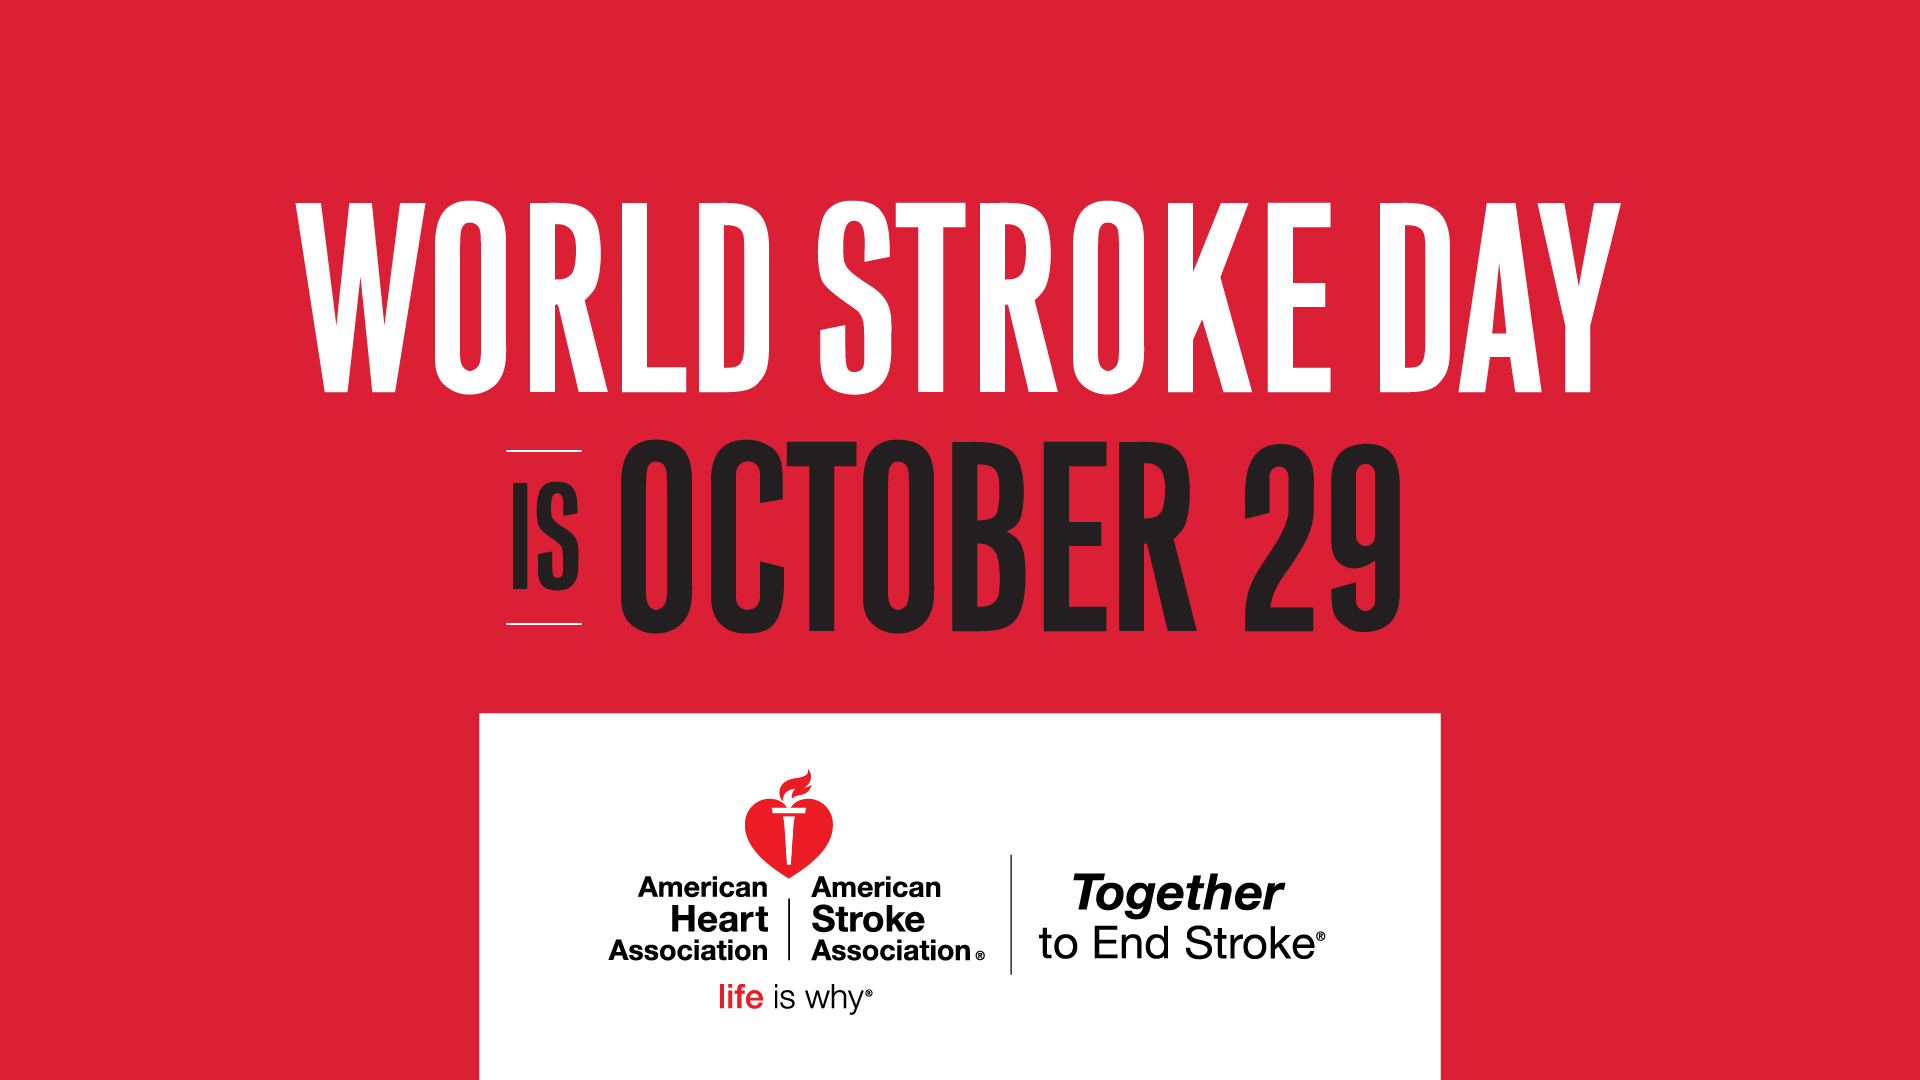 World Stroke Day is October 29th